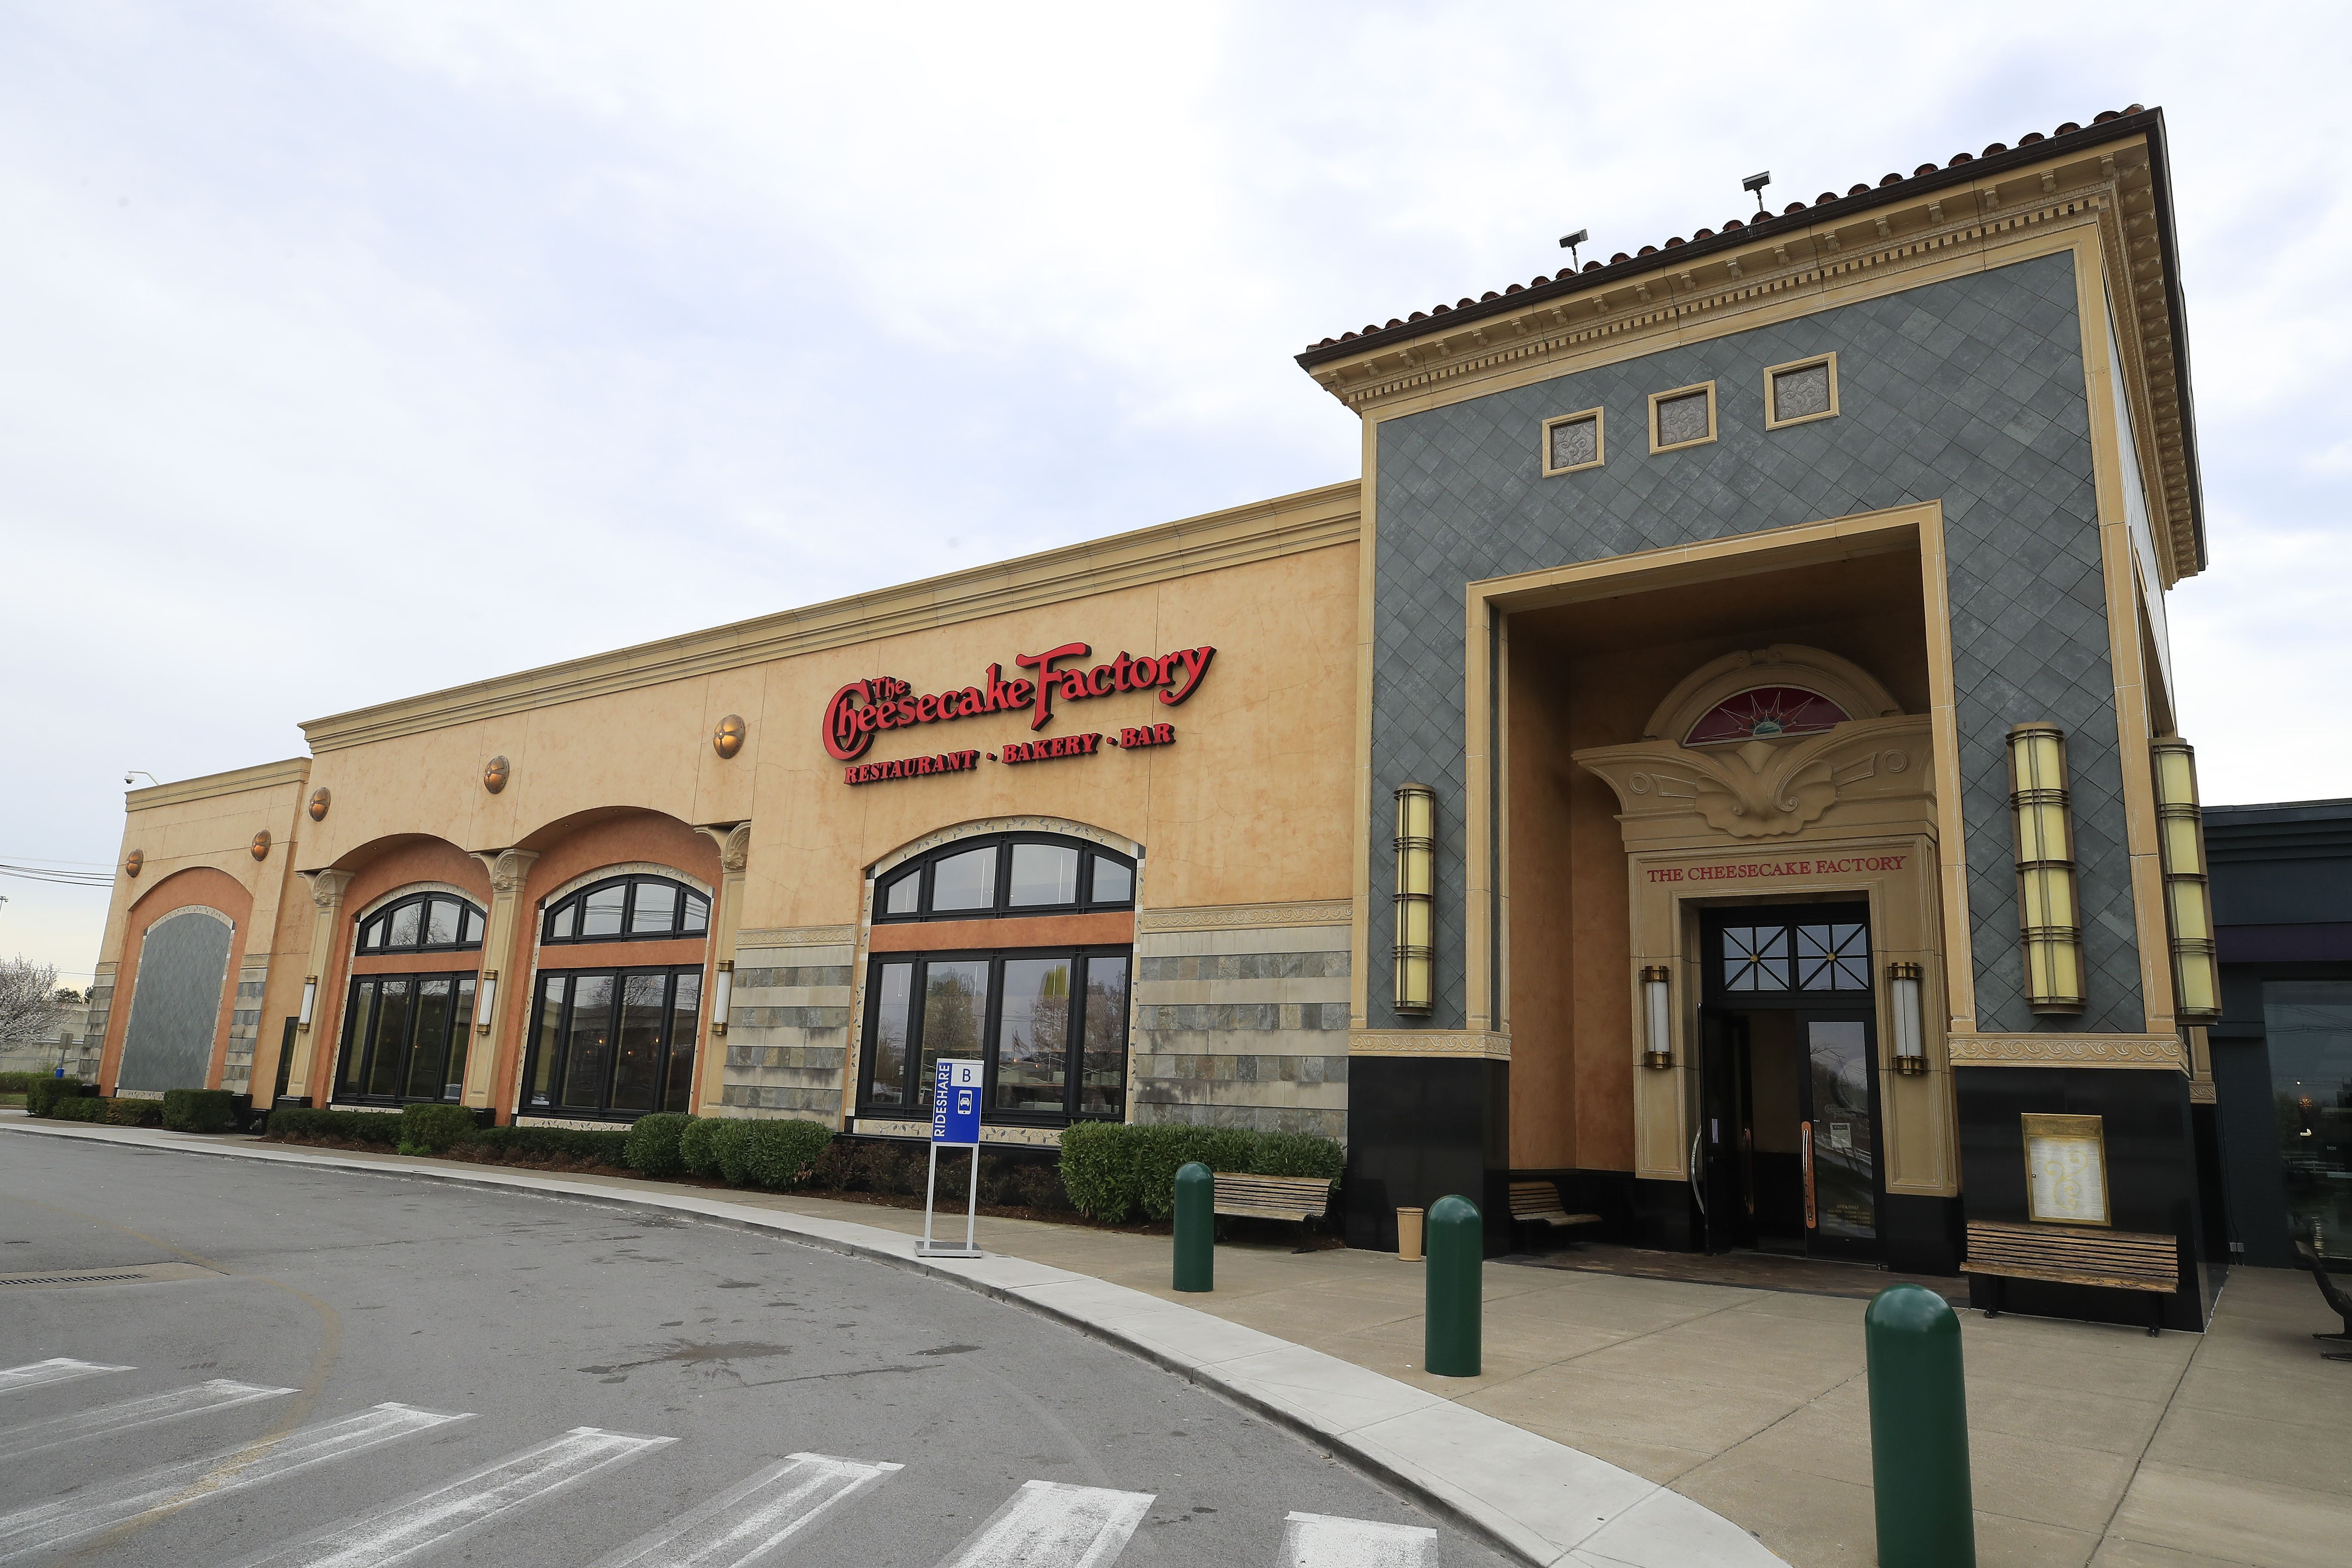 LOUISVILLE, KENTUCKY - MARCH 26: A Cheesecake Factory restaurant is operating on March 26, 2020 in Louisville, Kentucky. The restaurant chain has announced that it will not be able to pay its rent starting to April 1 due to how the COVID-19 crisis has affected its business. (Photo by Andy Lyons/Getty Images)